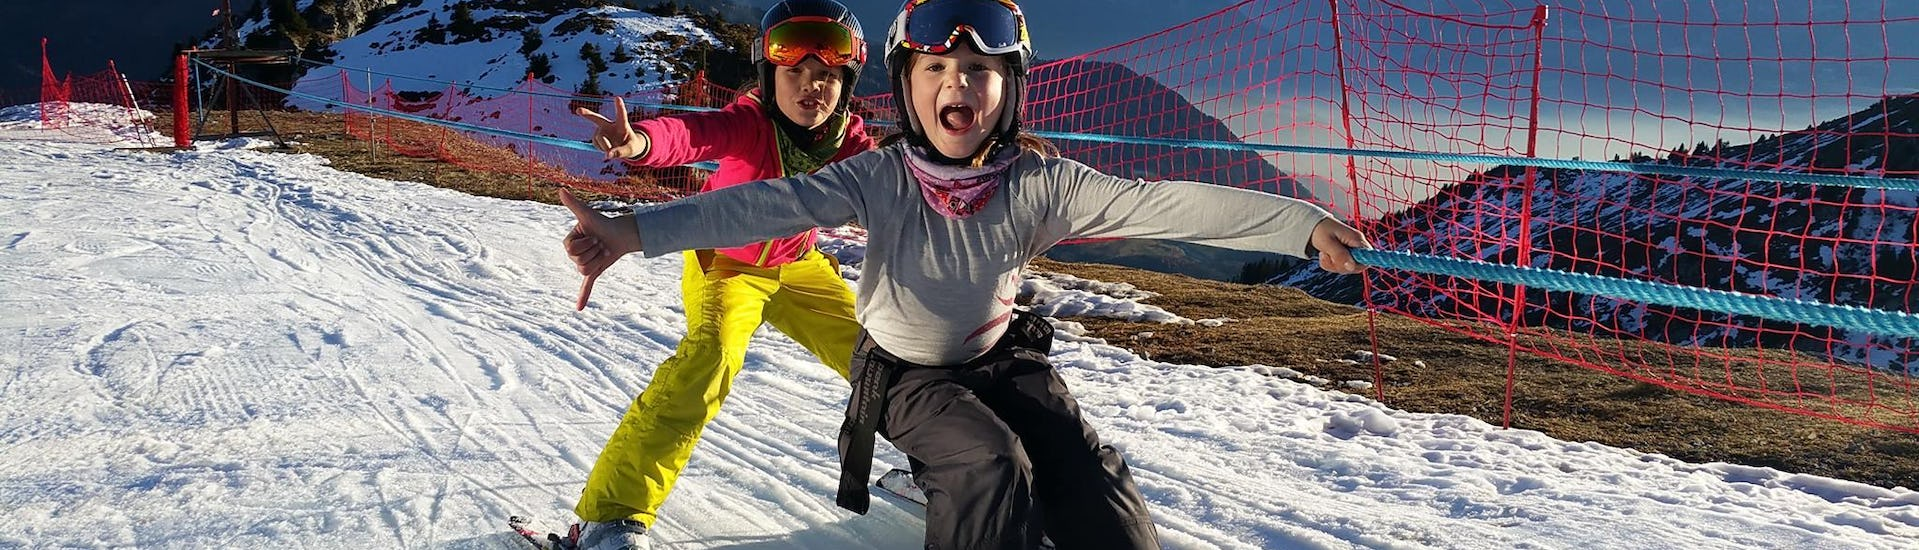 Private Ski Instructor for Kids (3-16 years) - All Levels